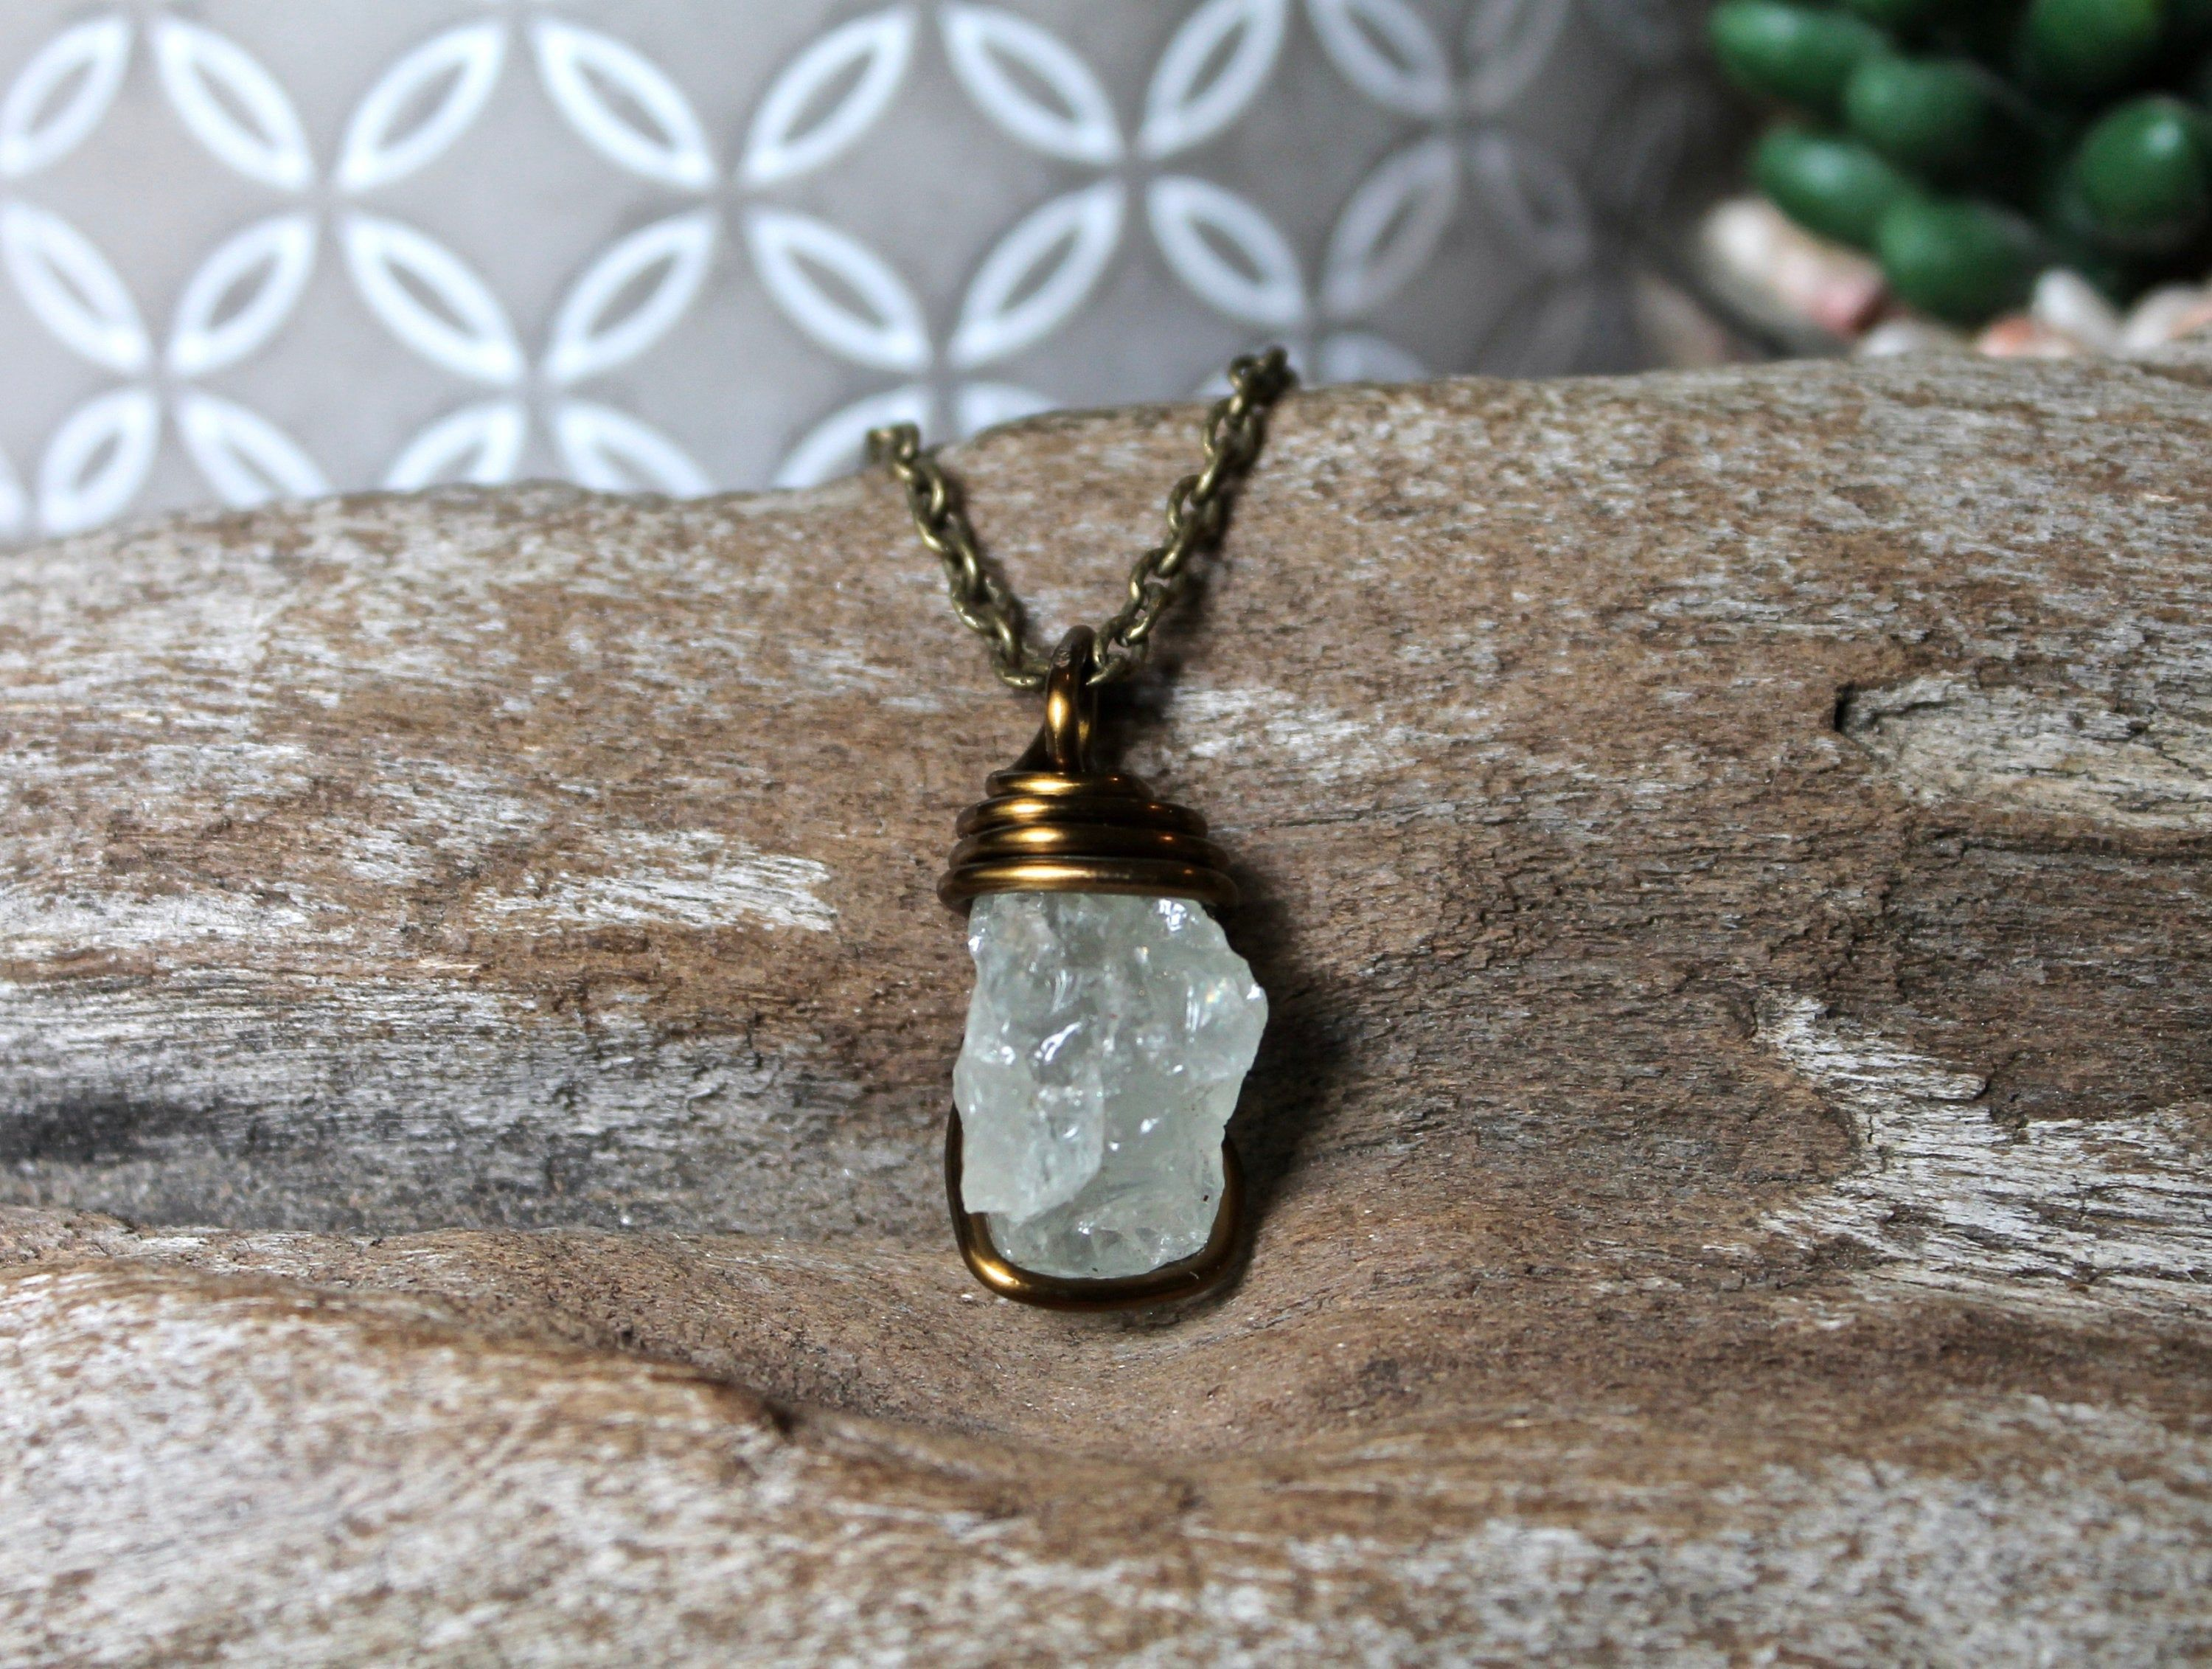 Healing Crystal Jewelry Raw Quartz Point Gifts For Her Wrapped Stone Pendant Crystal Quartz Wire Wrapped Necklace with Skull Charm